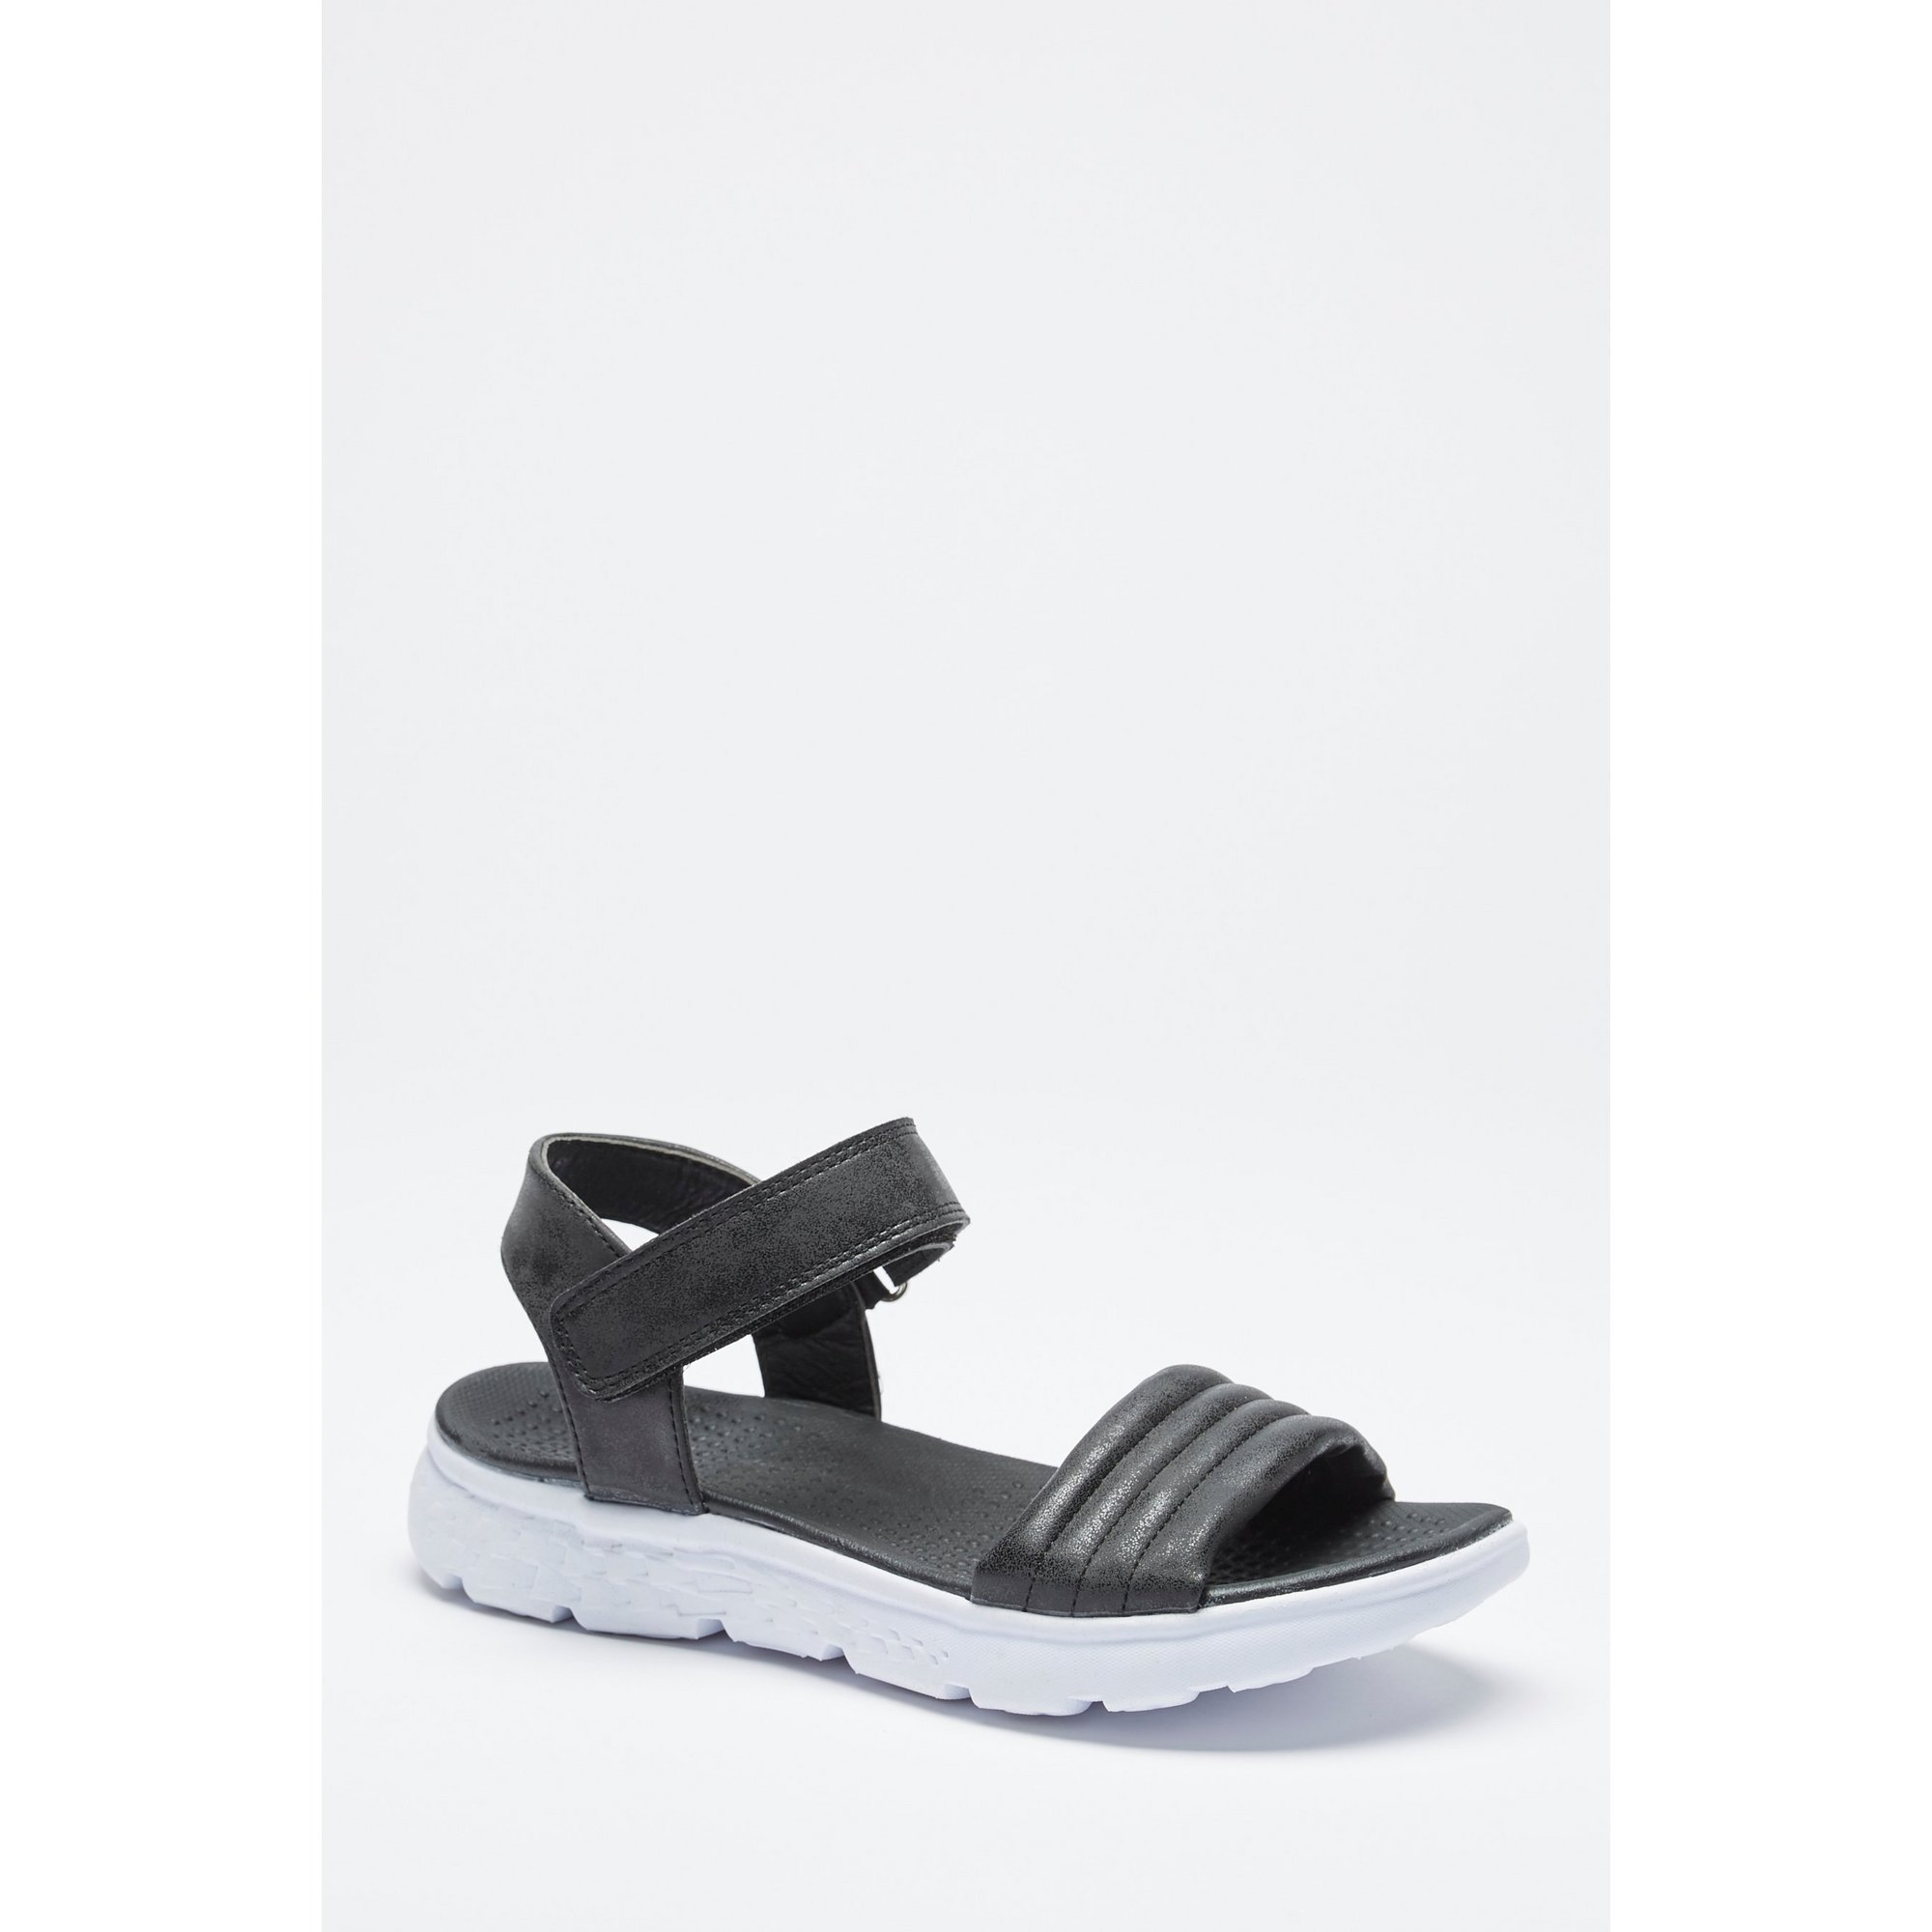 Image of 2 Part Casual Black Sandals